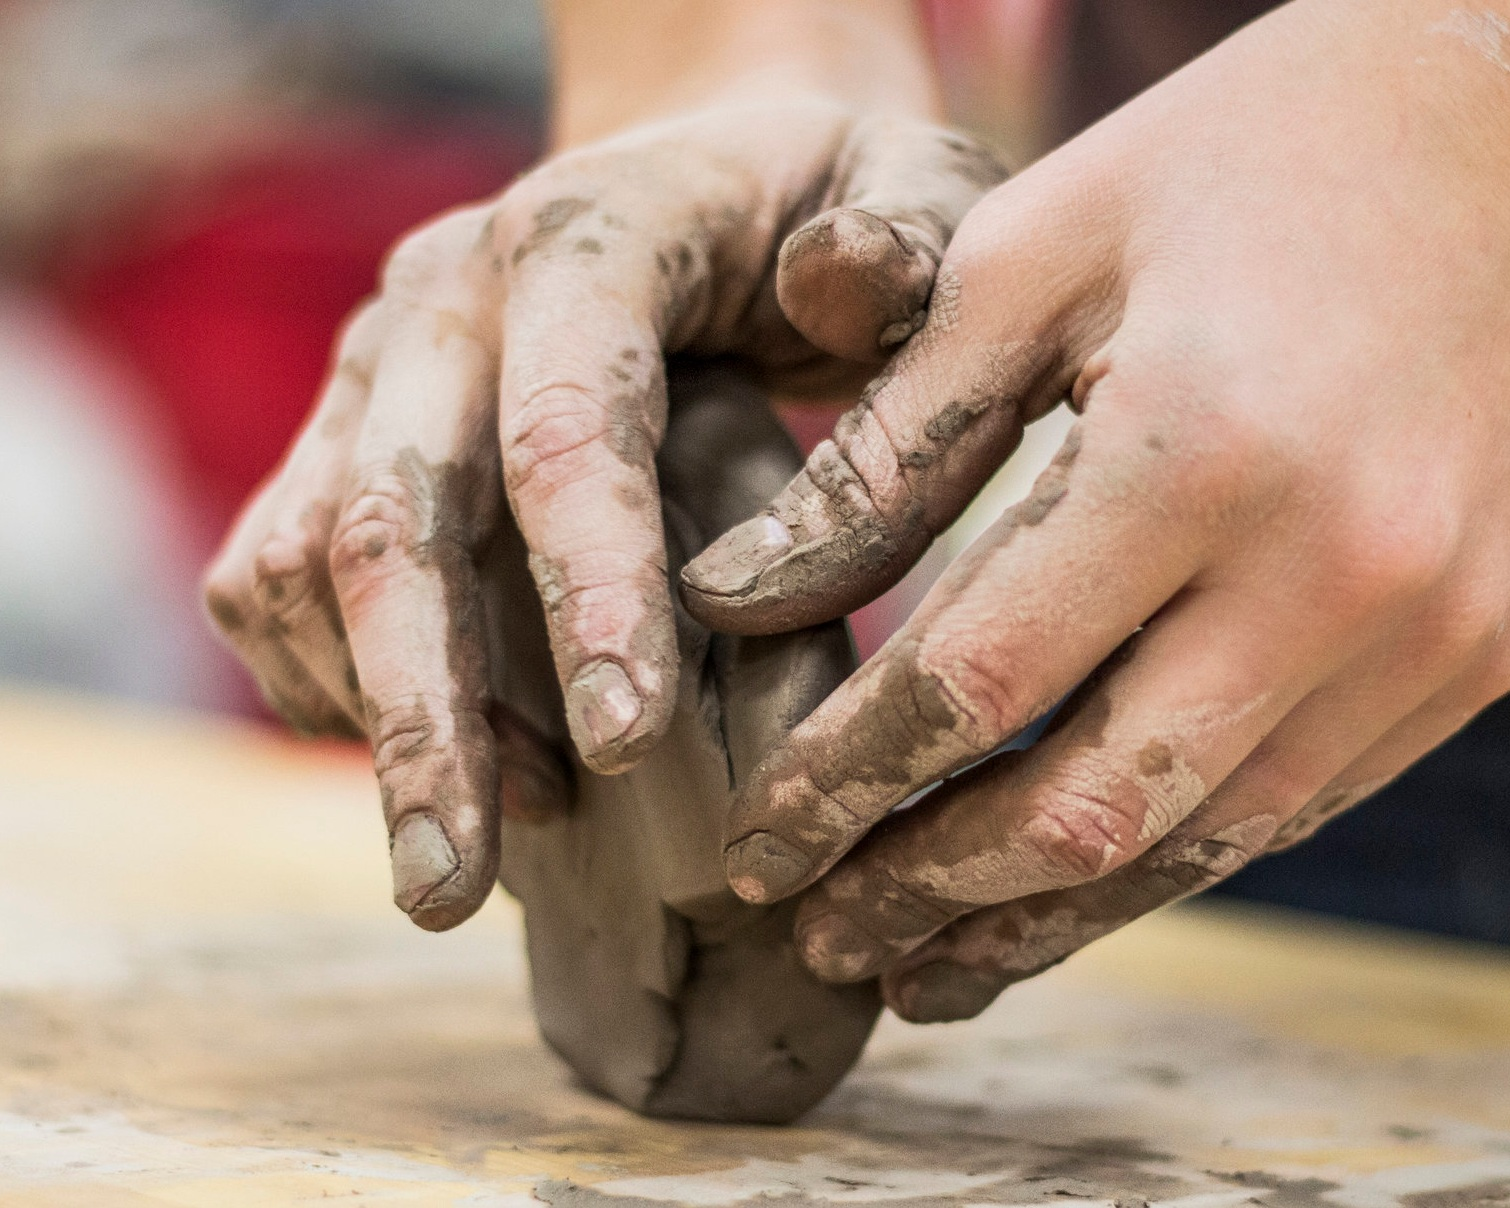 Photo Description: Two hands holding a rectangular piece of grey clay.